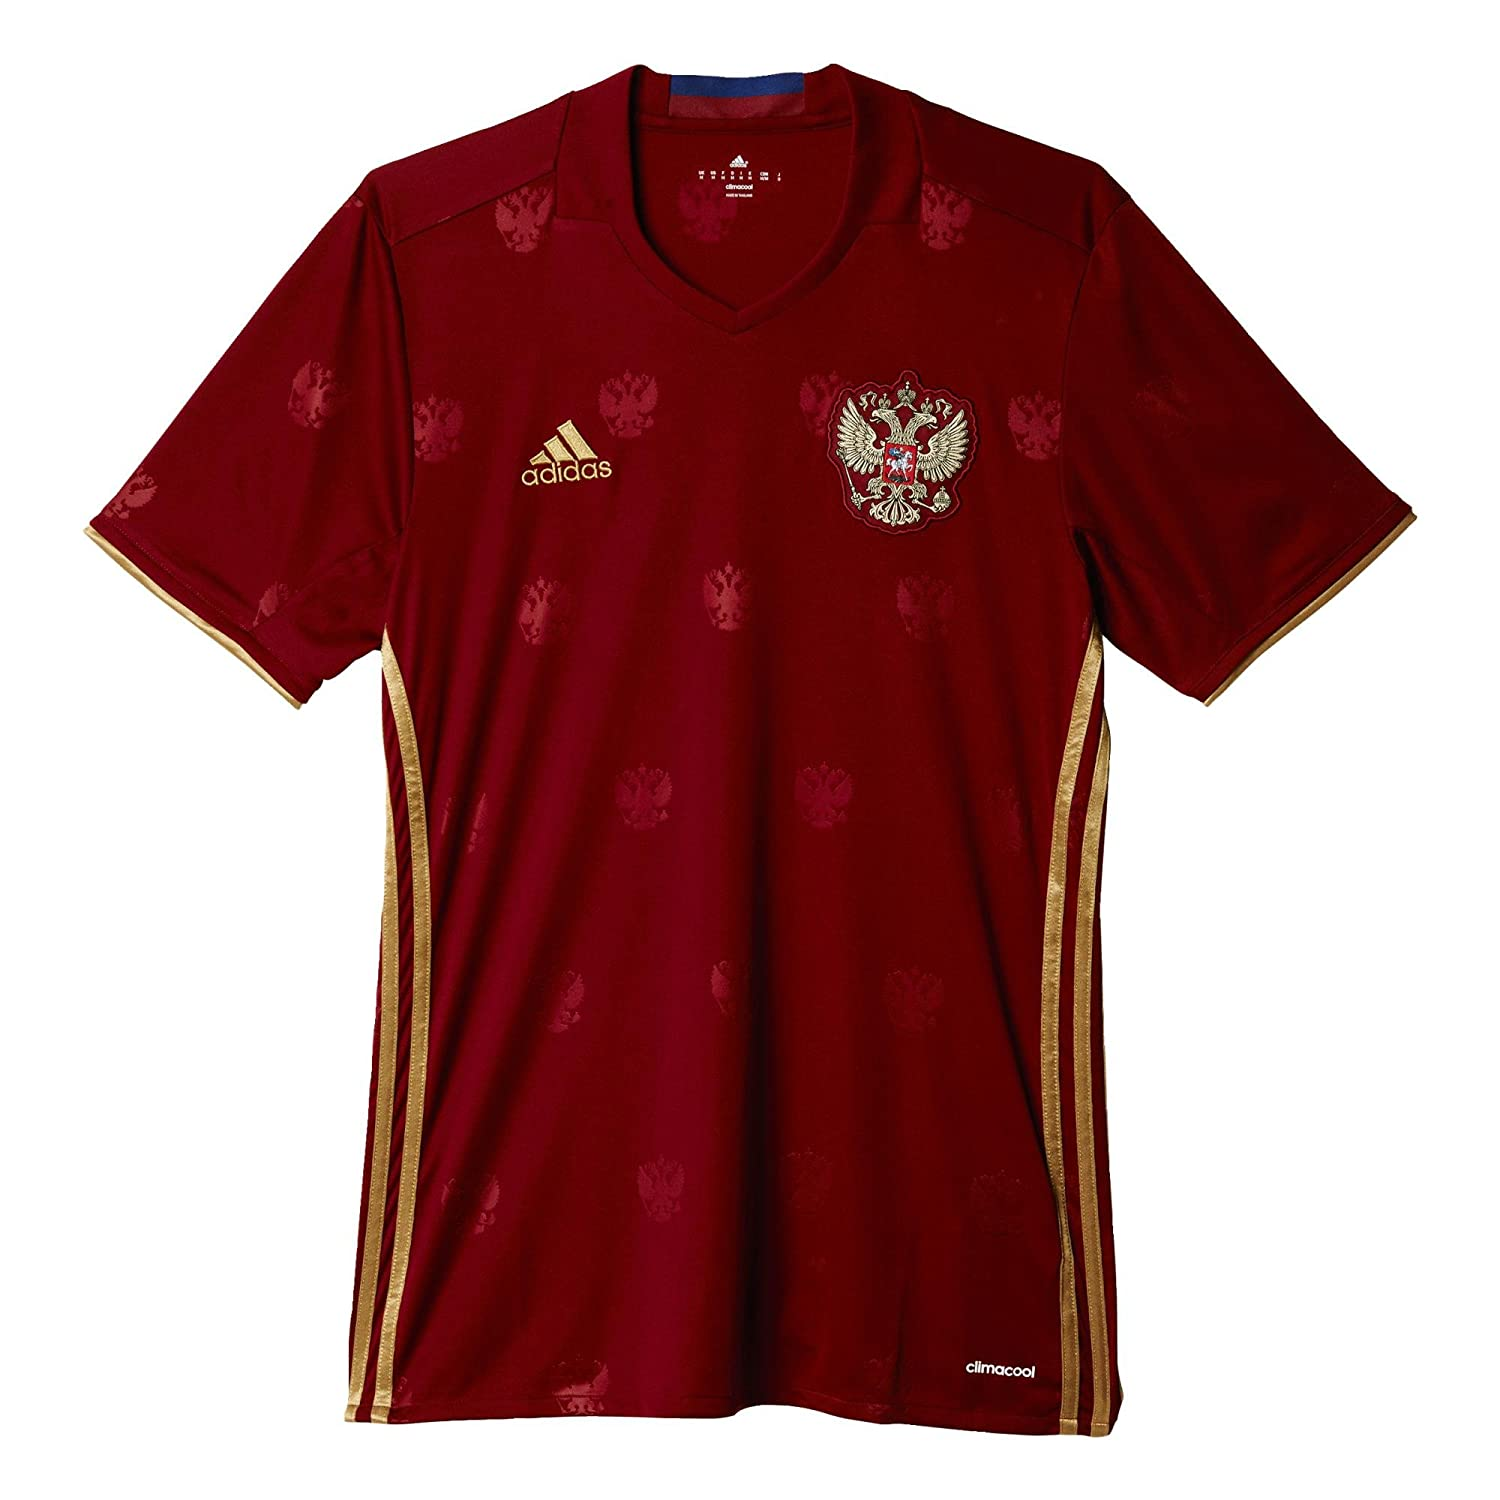 866ed0d5 Amazon.com : adidas Men's Soccer Russia Home Jersey : Sports & Outdoors